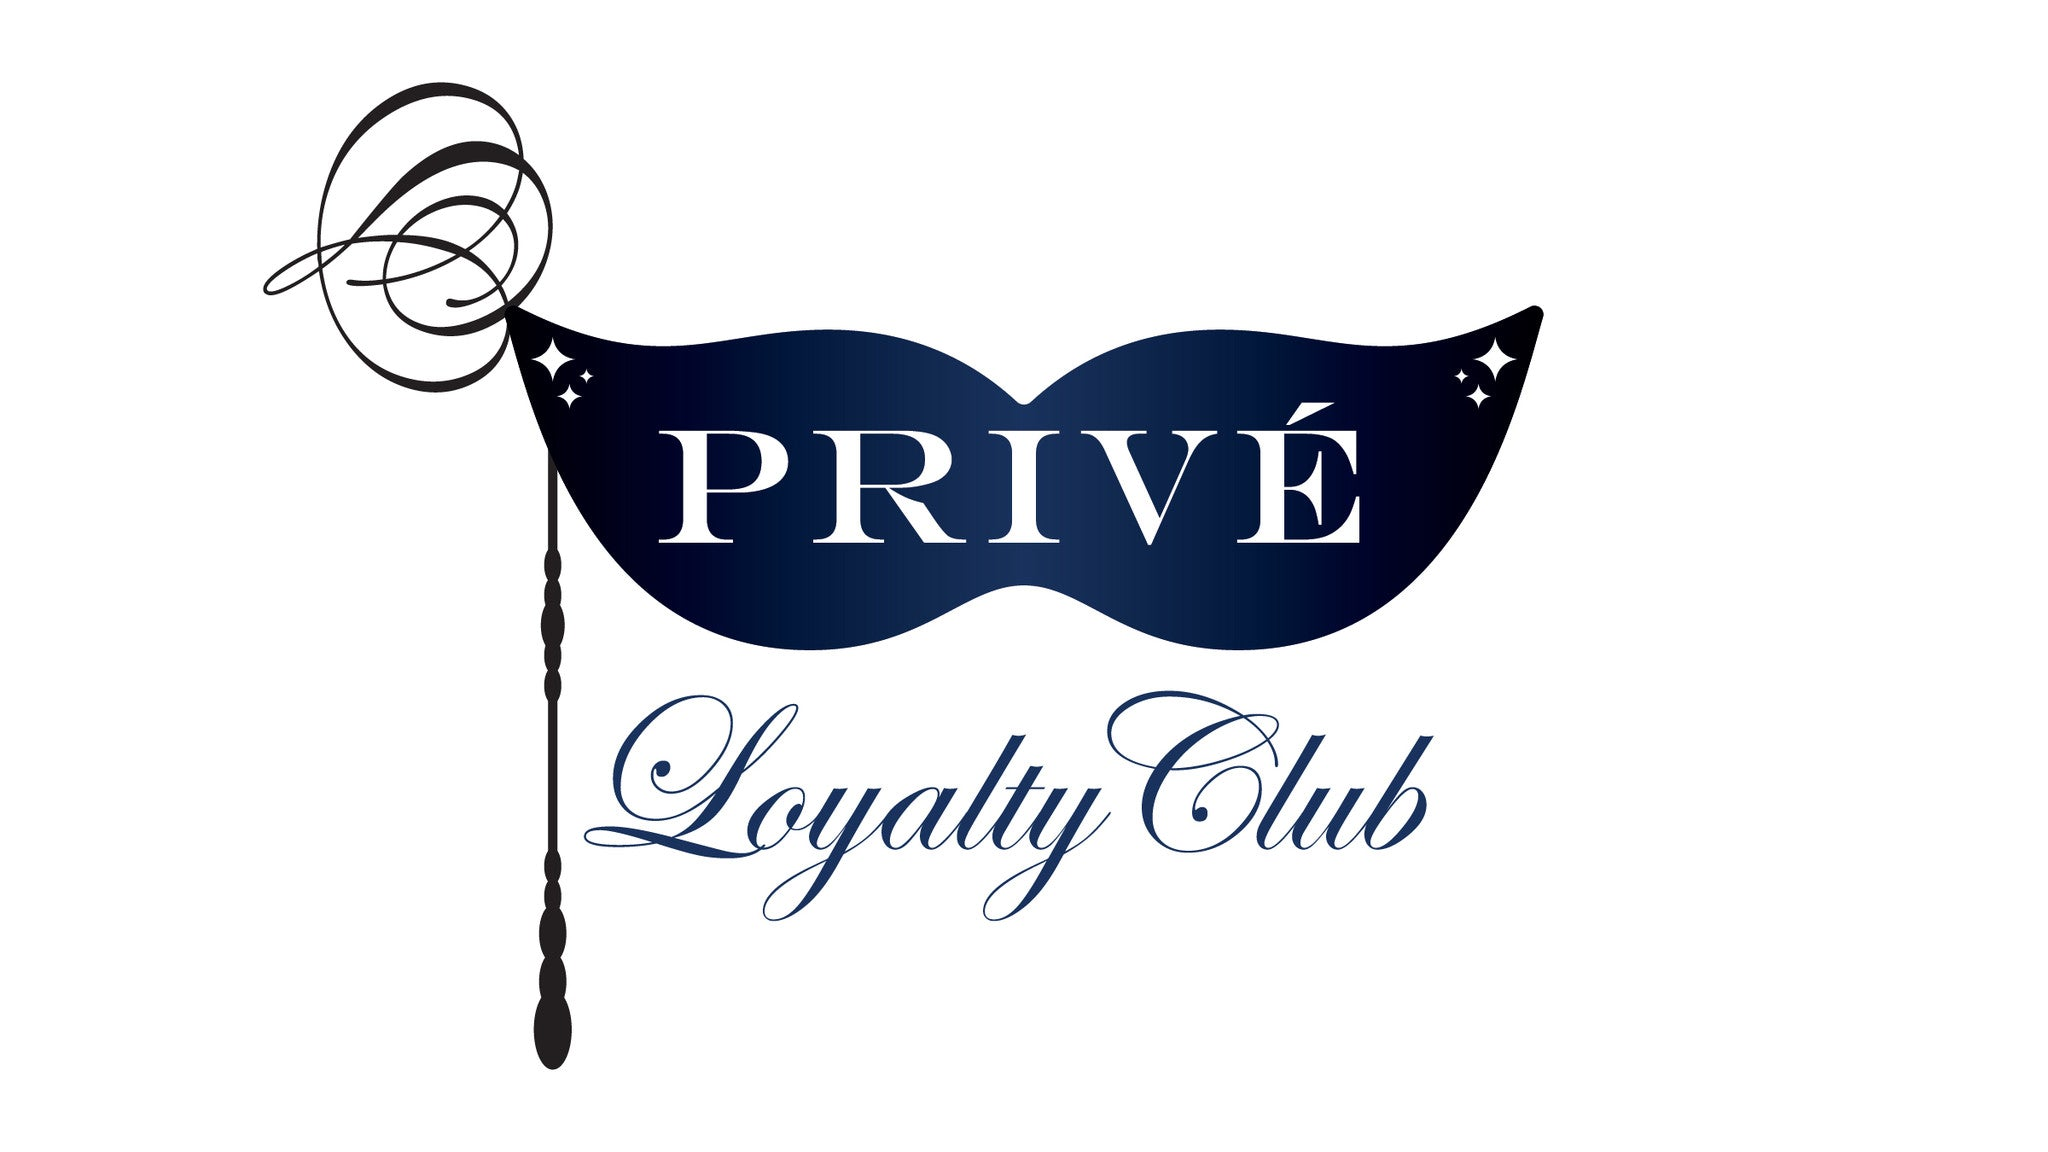 PRIVÉ Yearly Membership